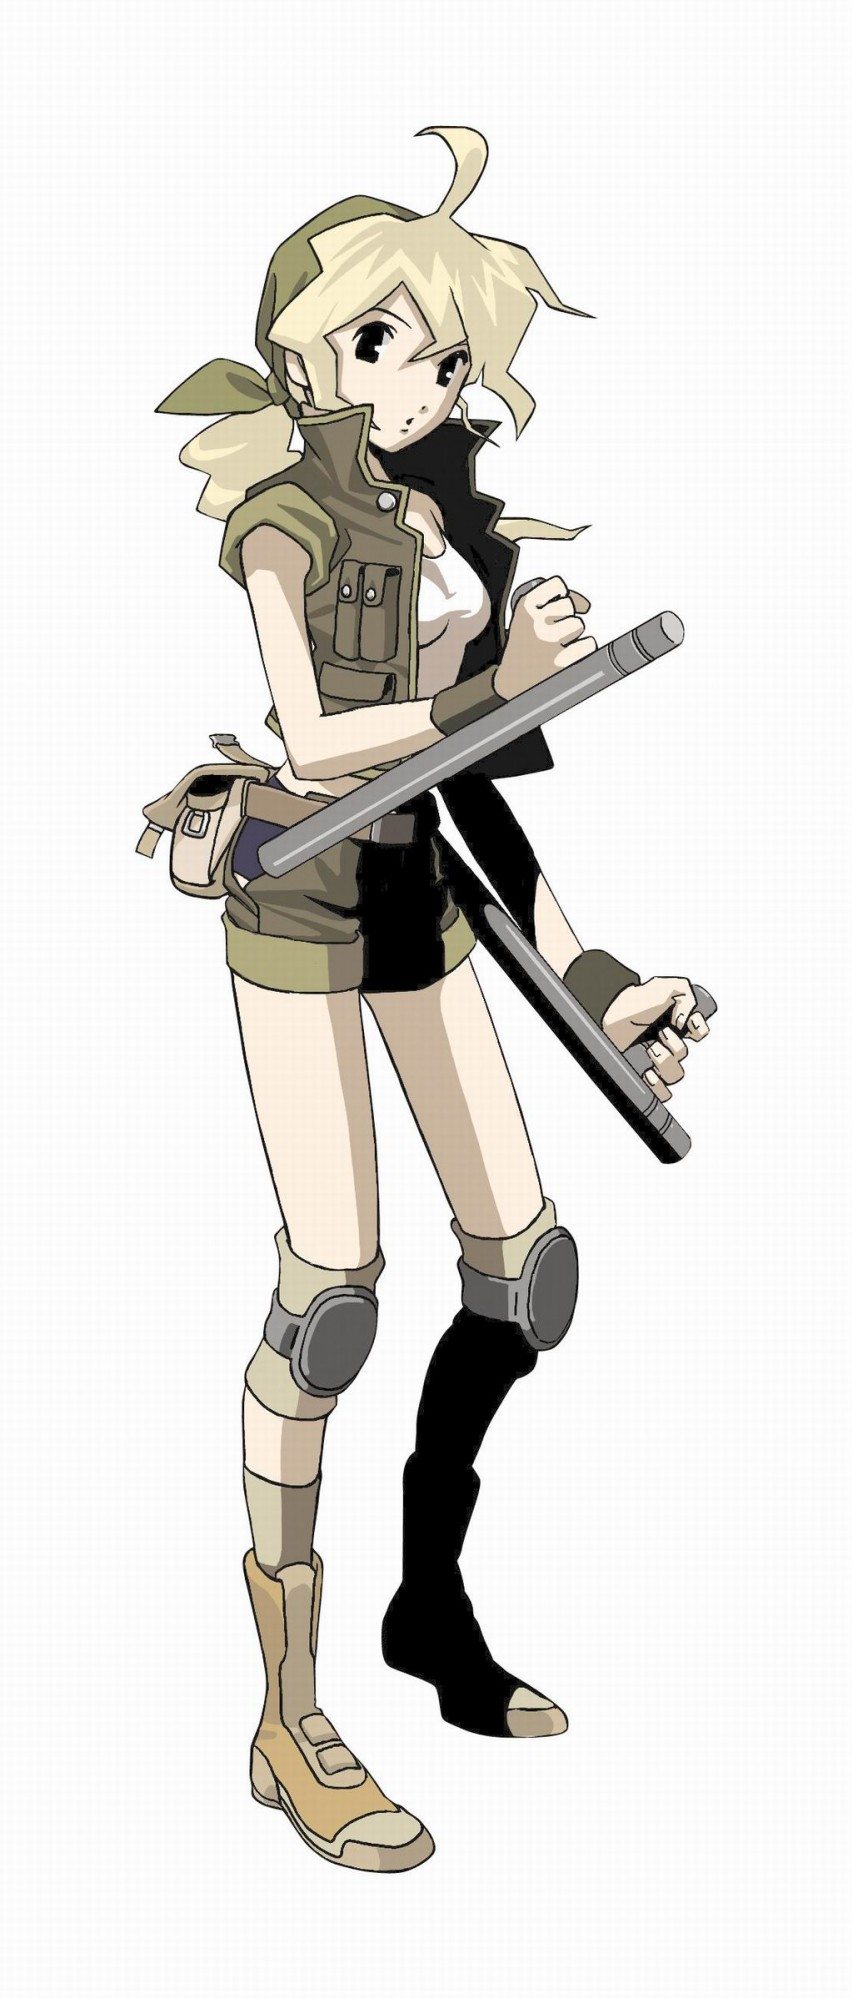 Eri Kasamoto  Wiki Metal slug  FANDOM powered by Wikia